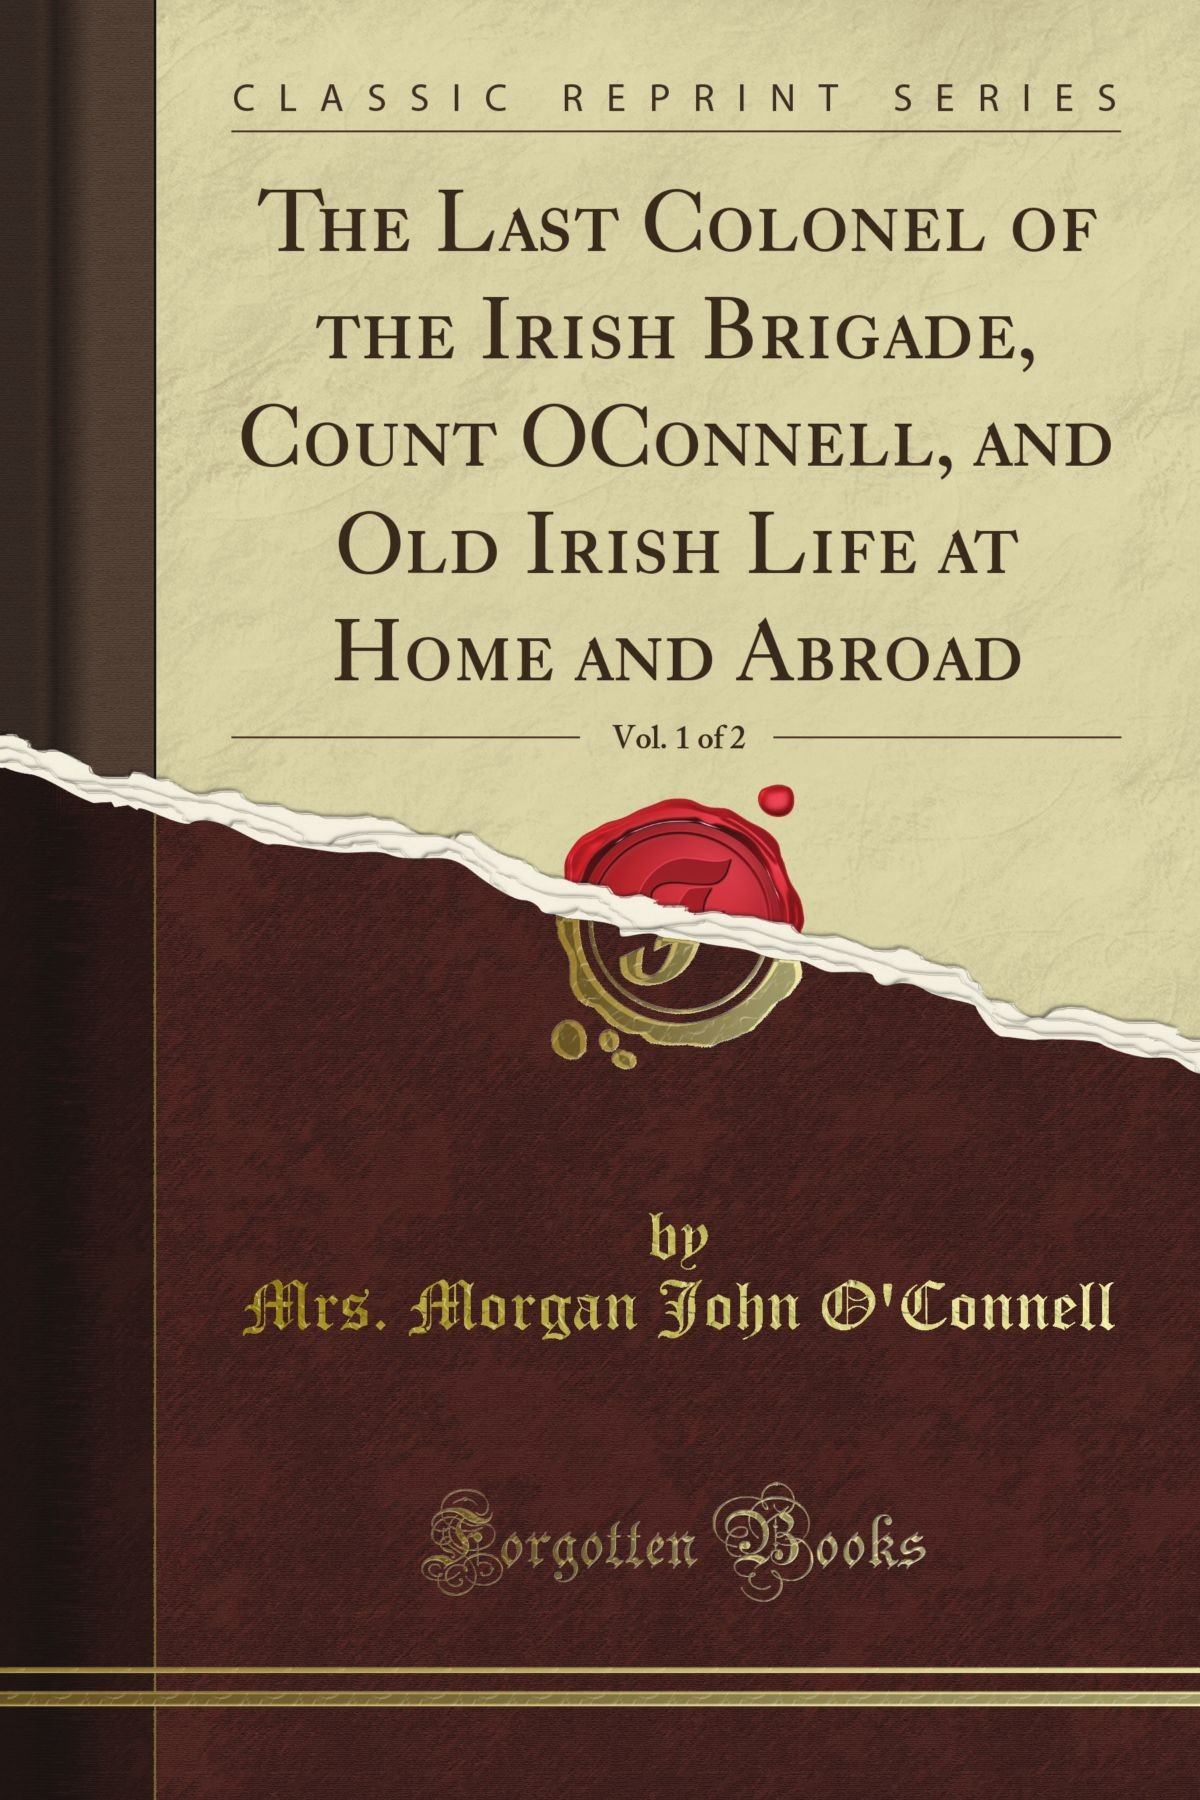 The Last Colonel of the Irish Brigade, Count O'Connell, and Old Irish Life at Home and Abroad, Vol. 1 of 2 (Classic Reprint) ebook